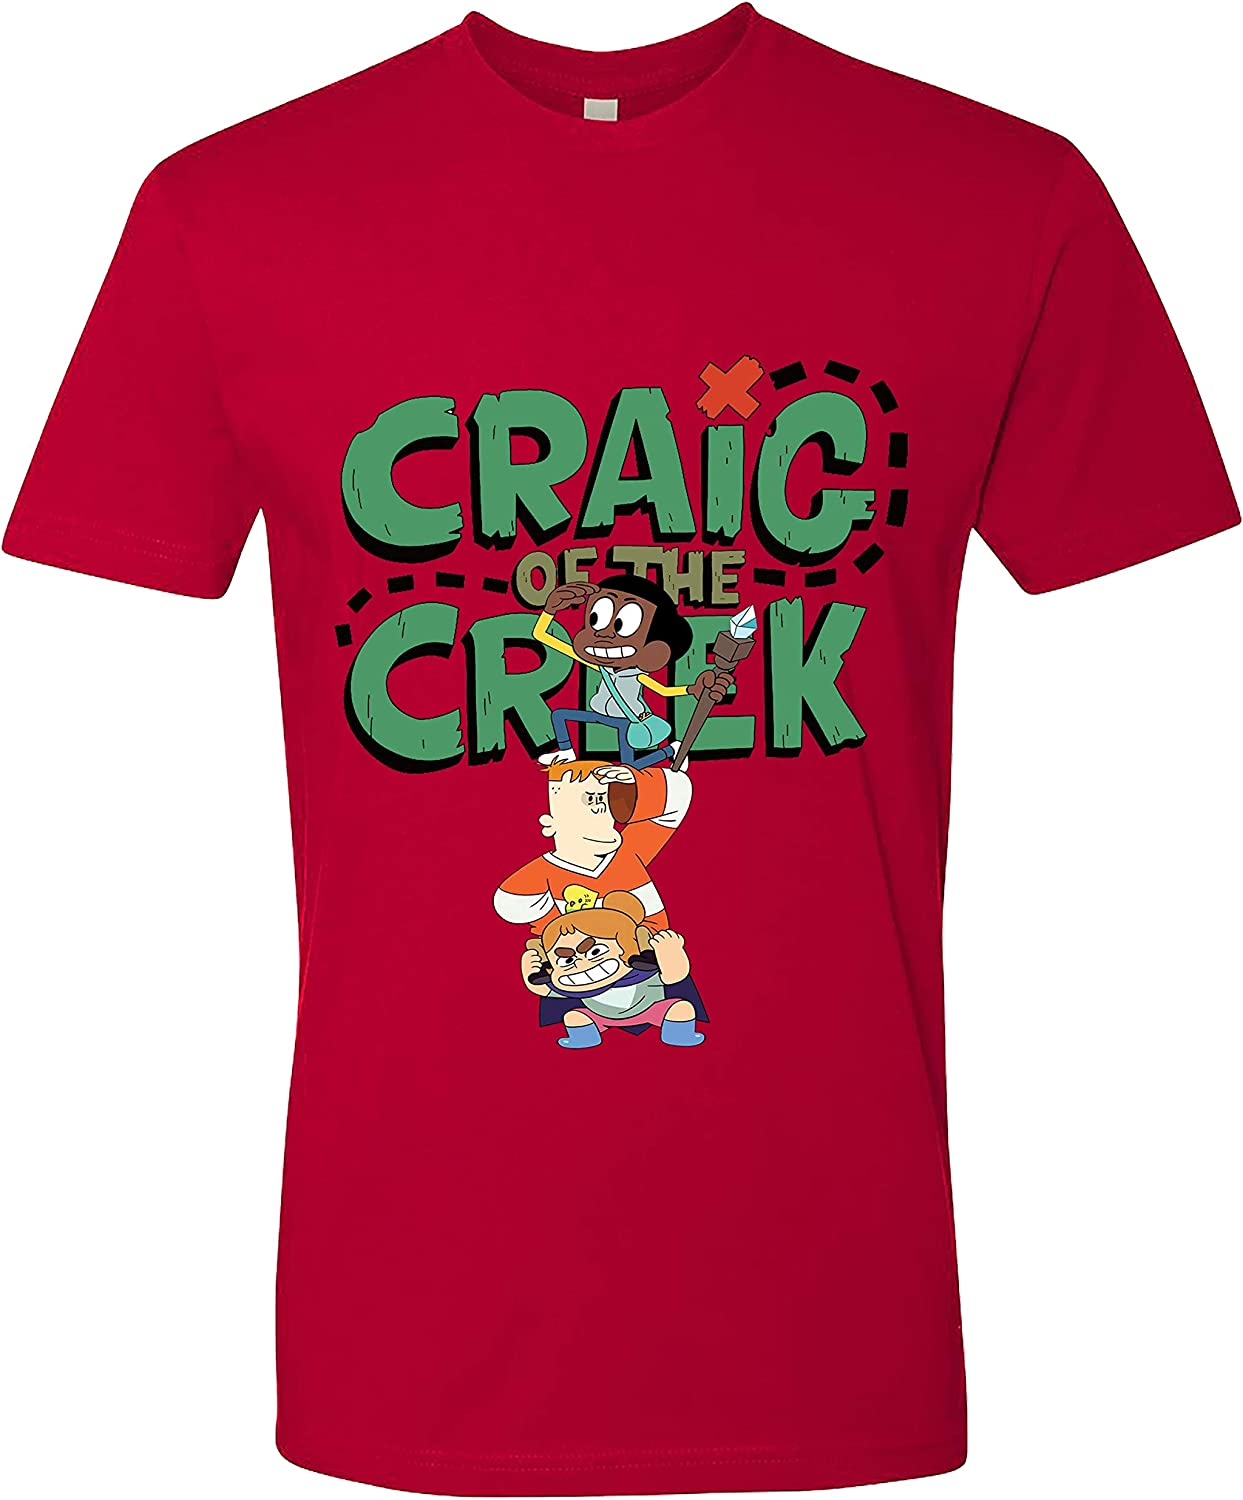 Craig of The Sale price Creek TV OFFicial Show Adult New T-Shirt Appa Unisex Stylish